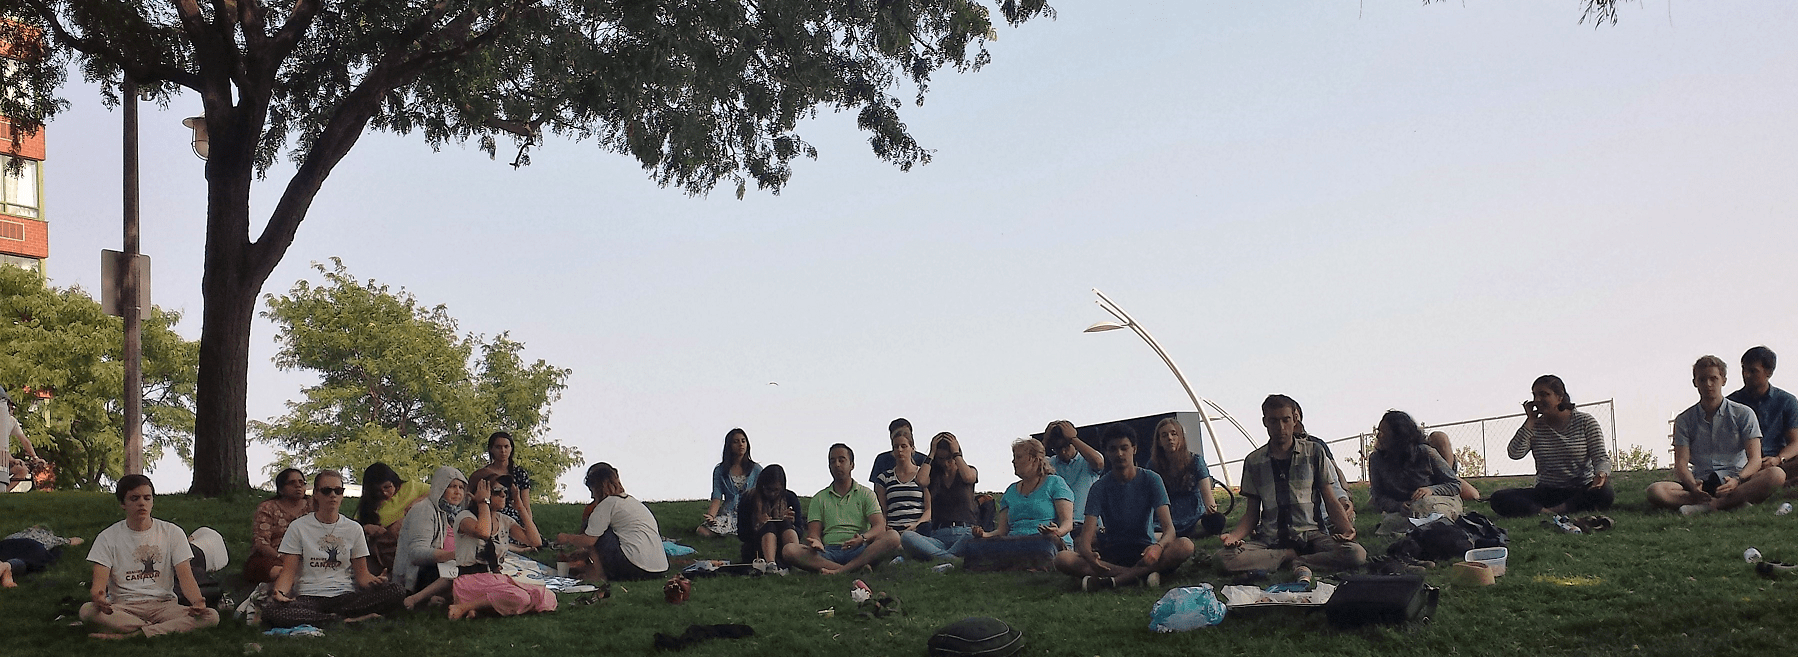 Meditation in burlington - Realize Canada Tour1